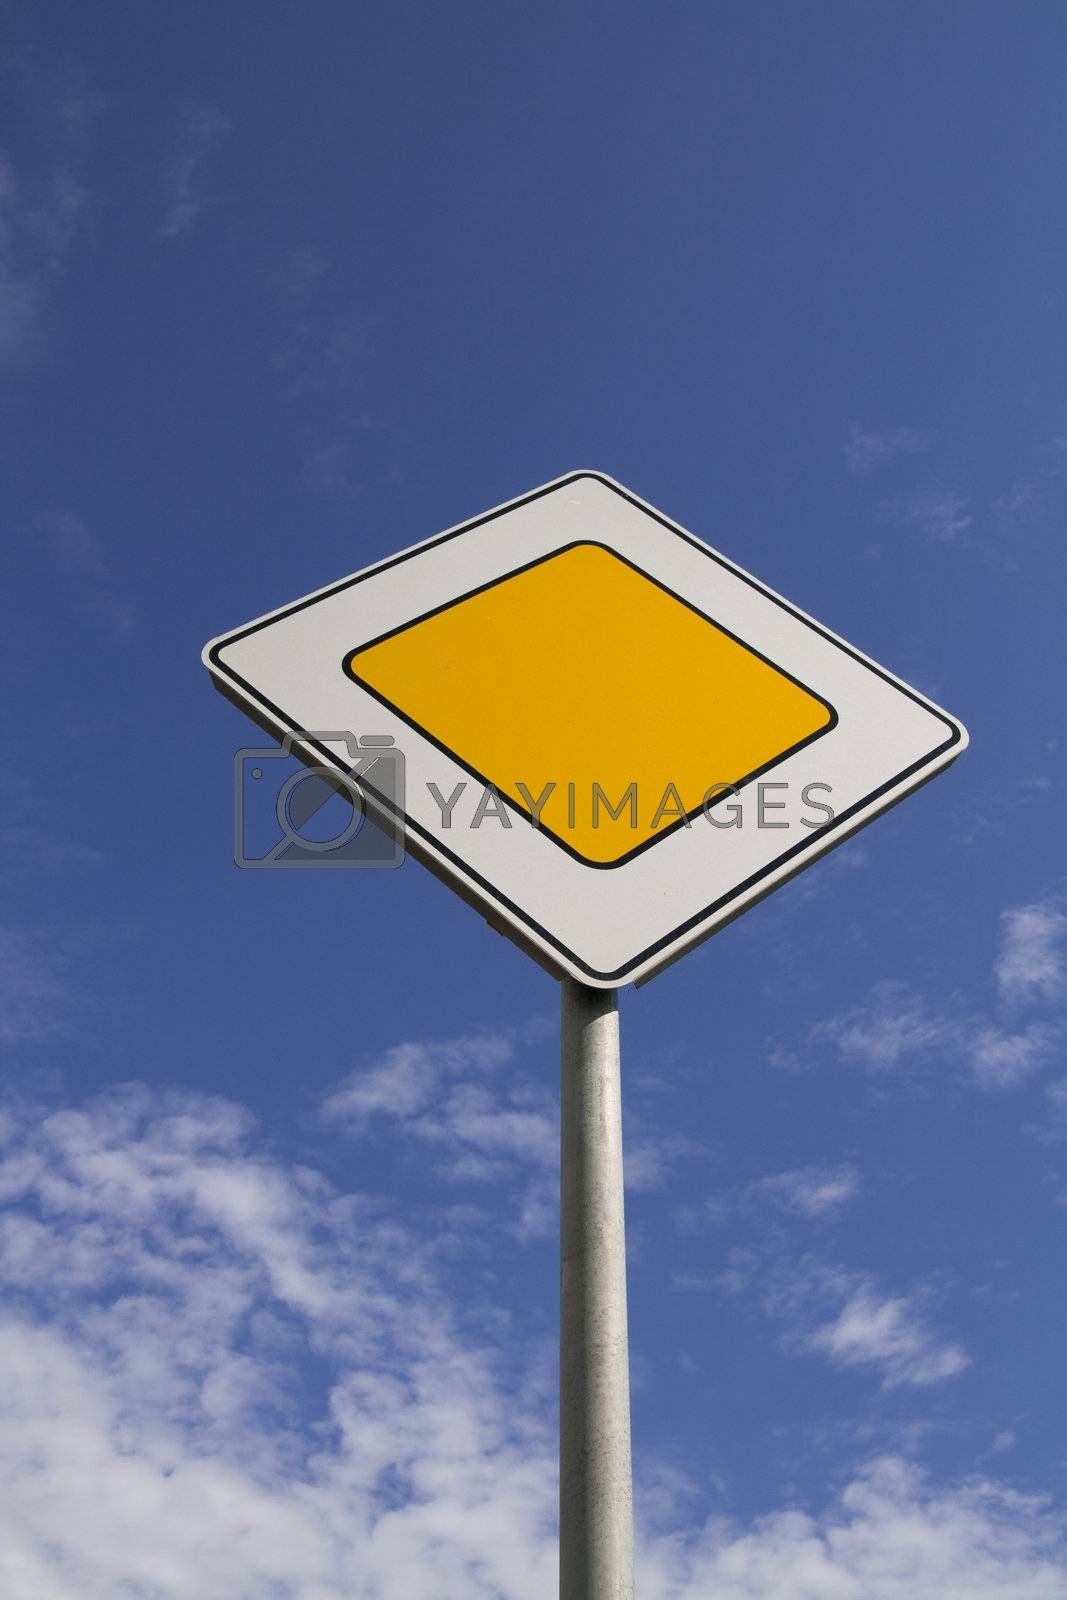 Traffic signs - the main road on blue sky background